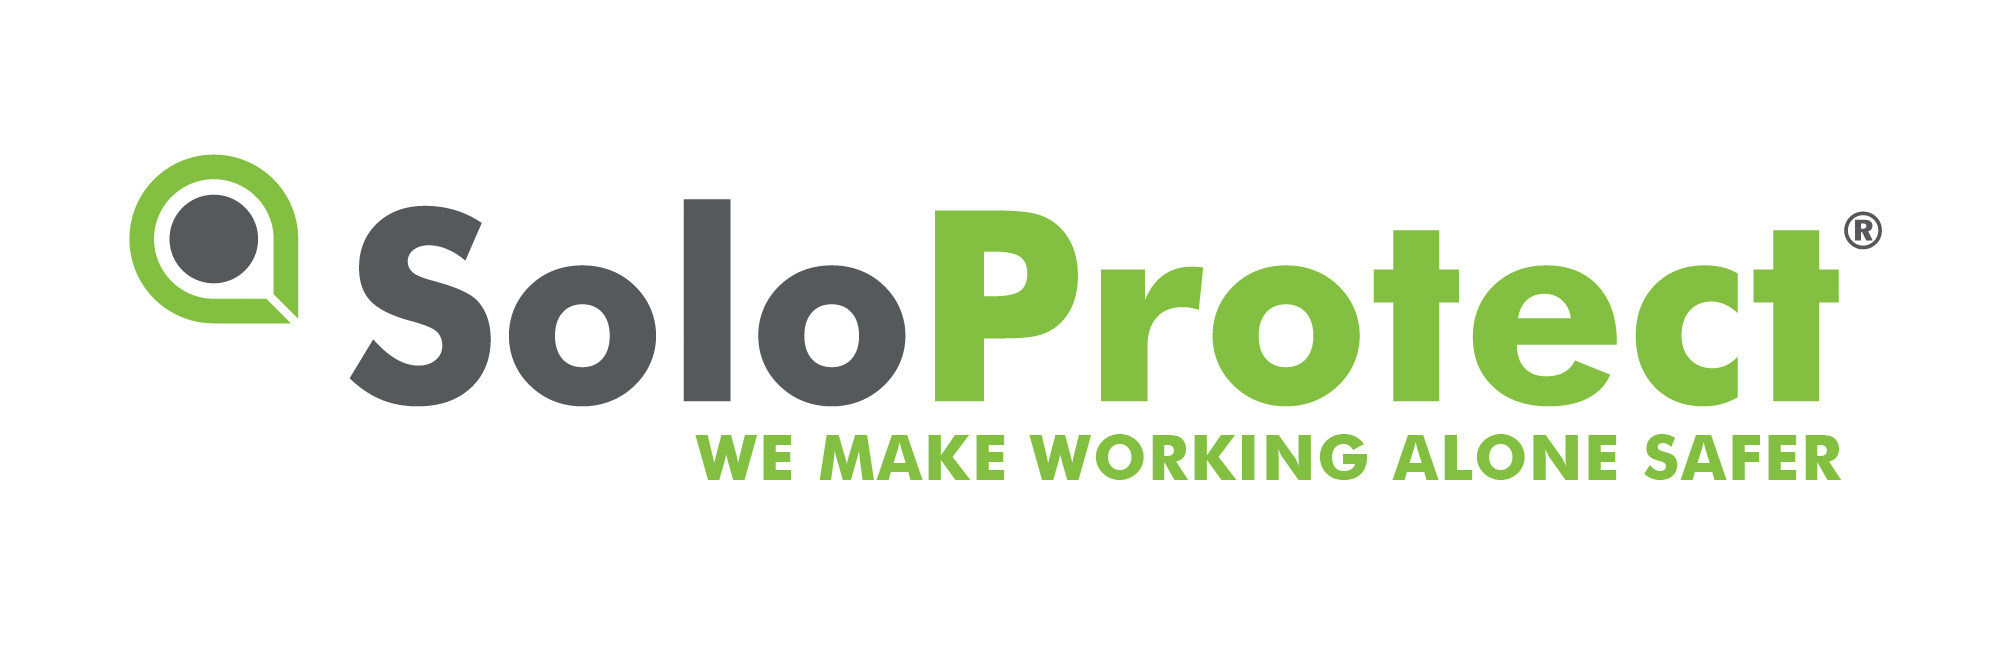 SoloProtect Announces Its Official Spin-Off from Kings III - Move Sharpens Strategic Focus for Global Company and Drives Additional Value for Customers